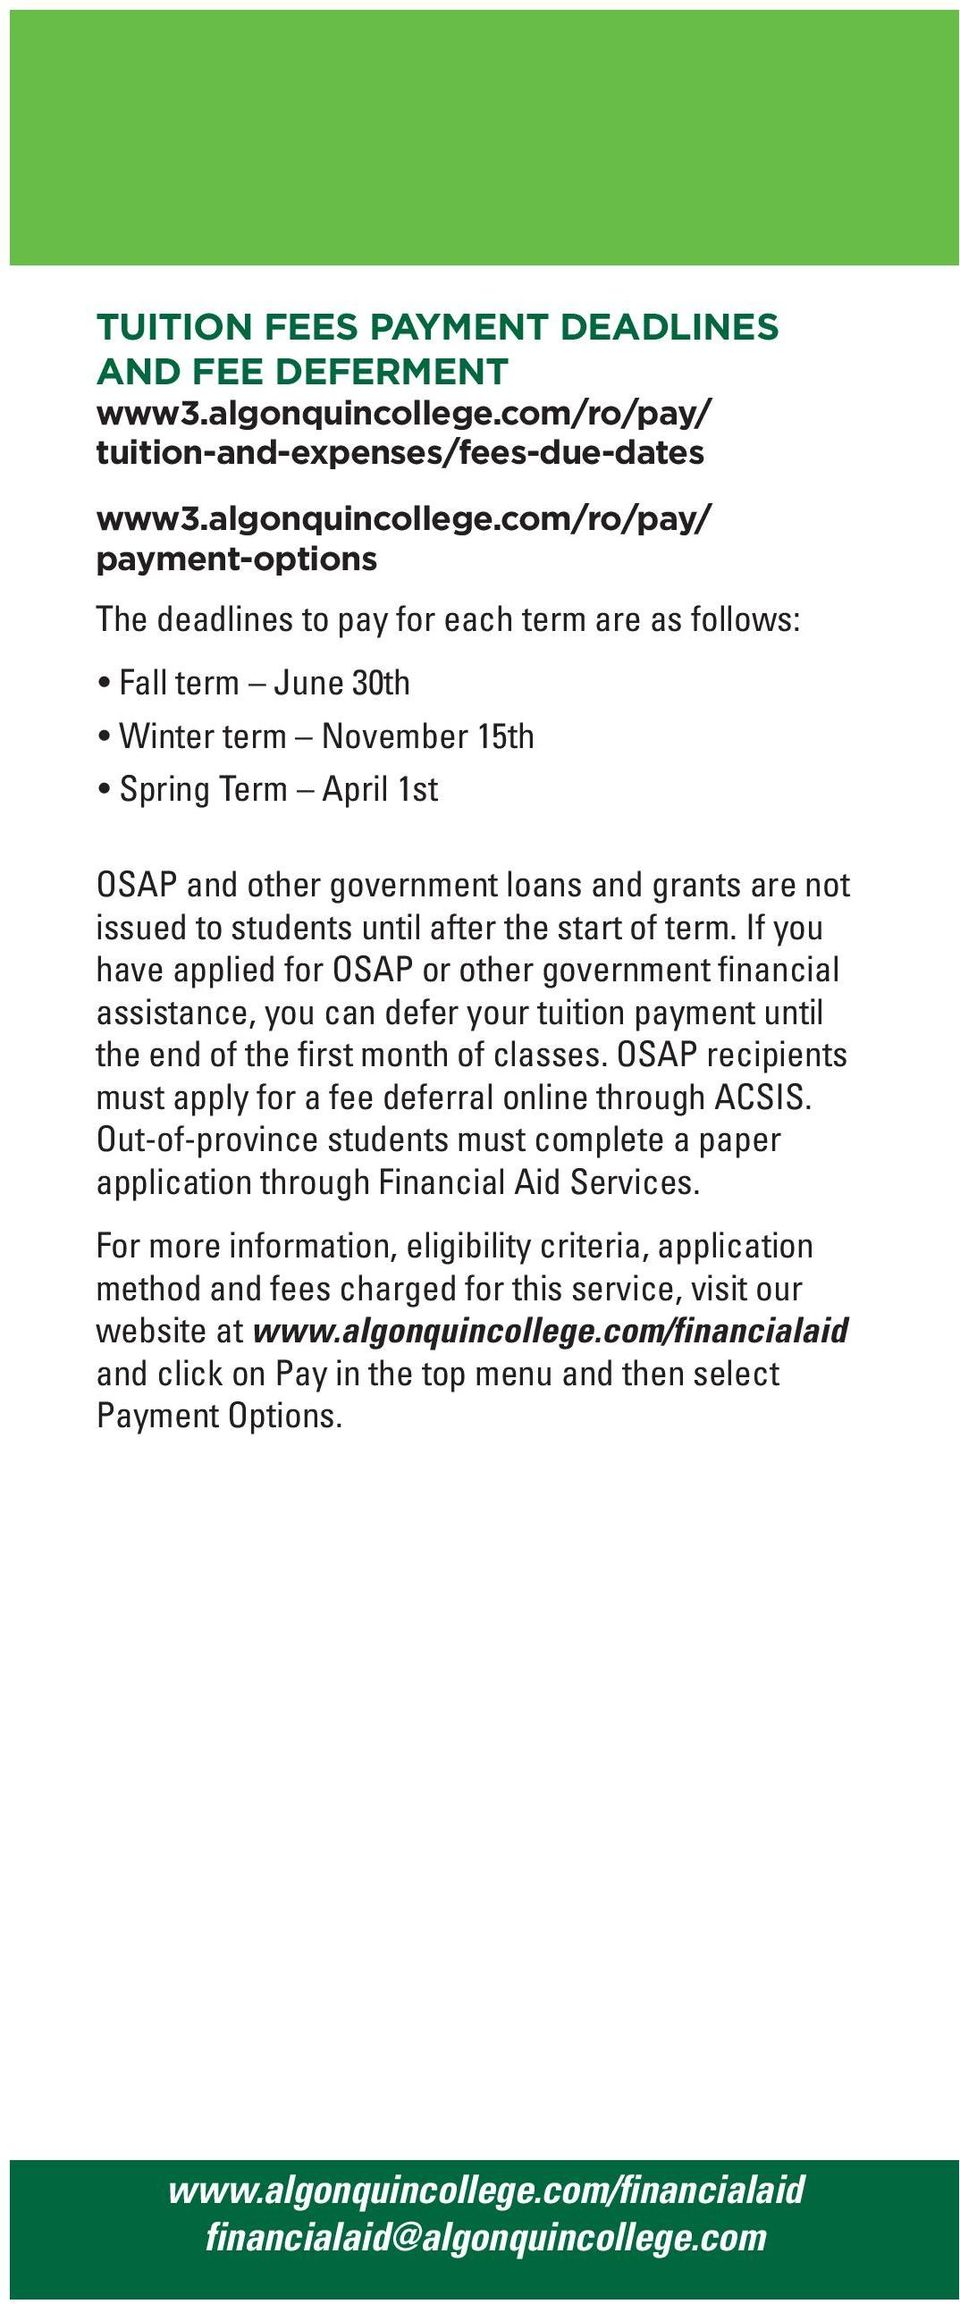 If you have applied for OSAP or other government financial assistance, you can defer your tuition payment until the end of the first month of classes.